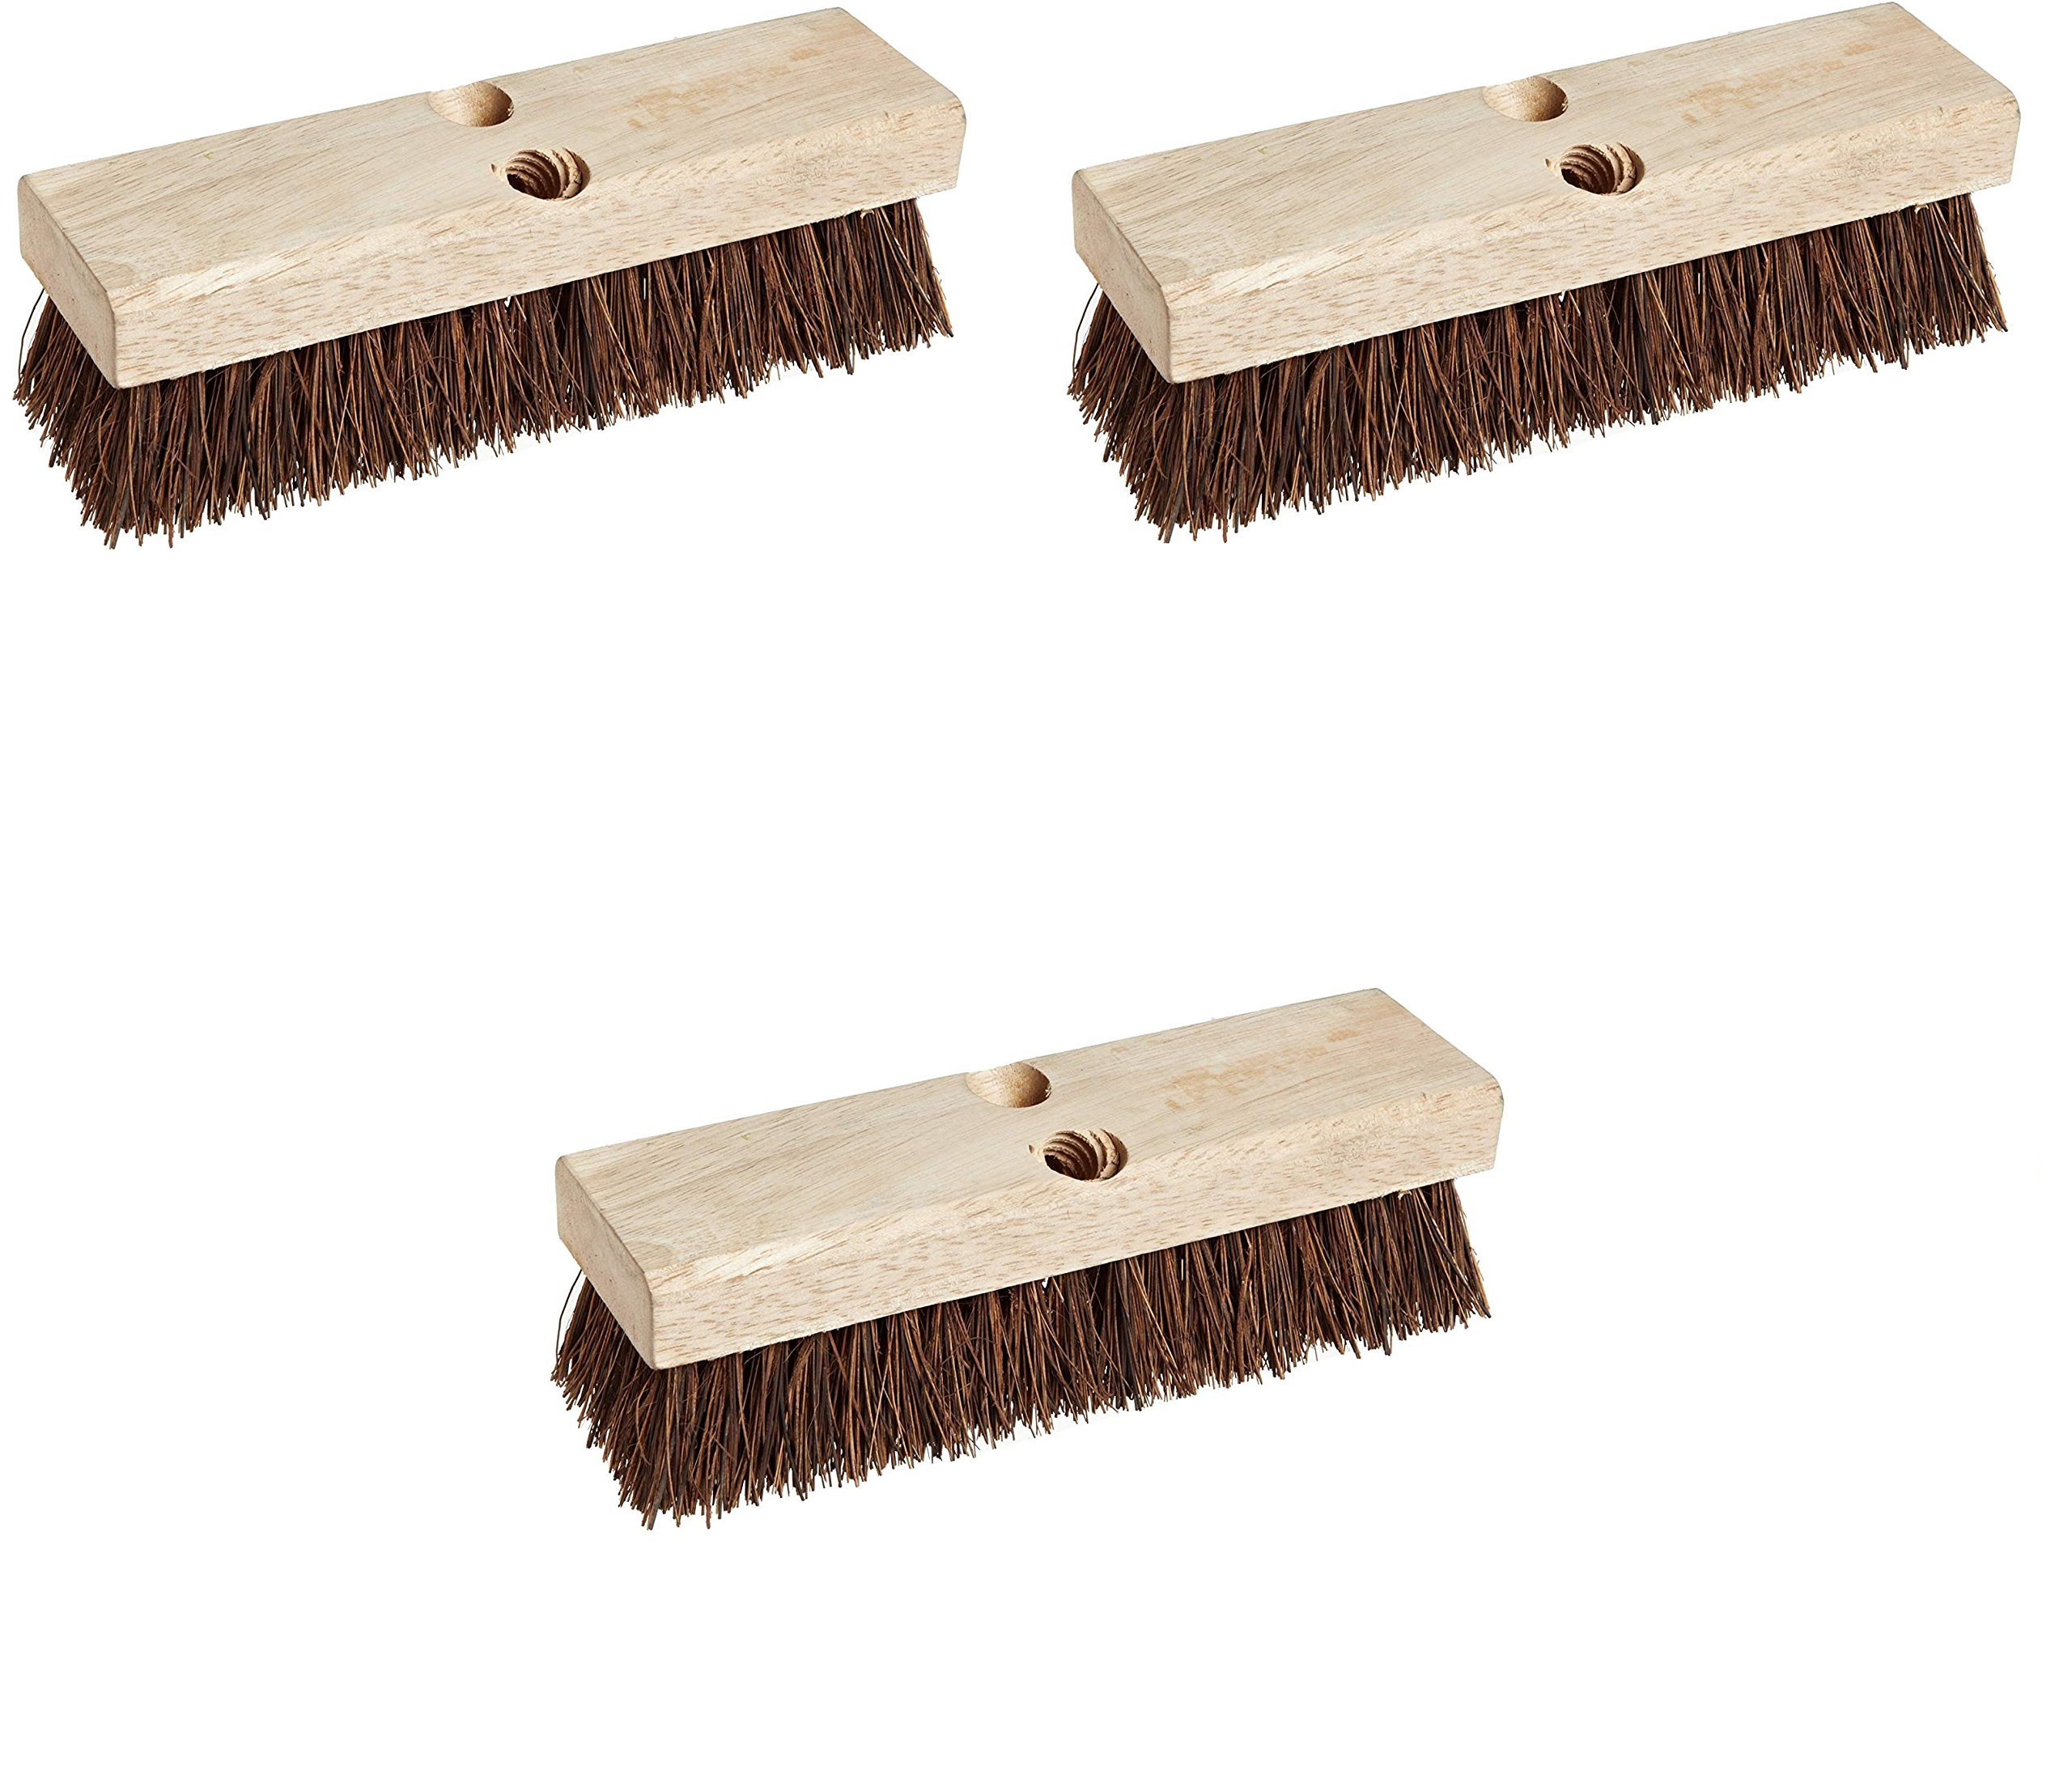 Weiler 44026 Palmyra Fill Deck Scrub Brush with Wood Block, 10'' Overall Length (3 pack)